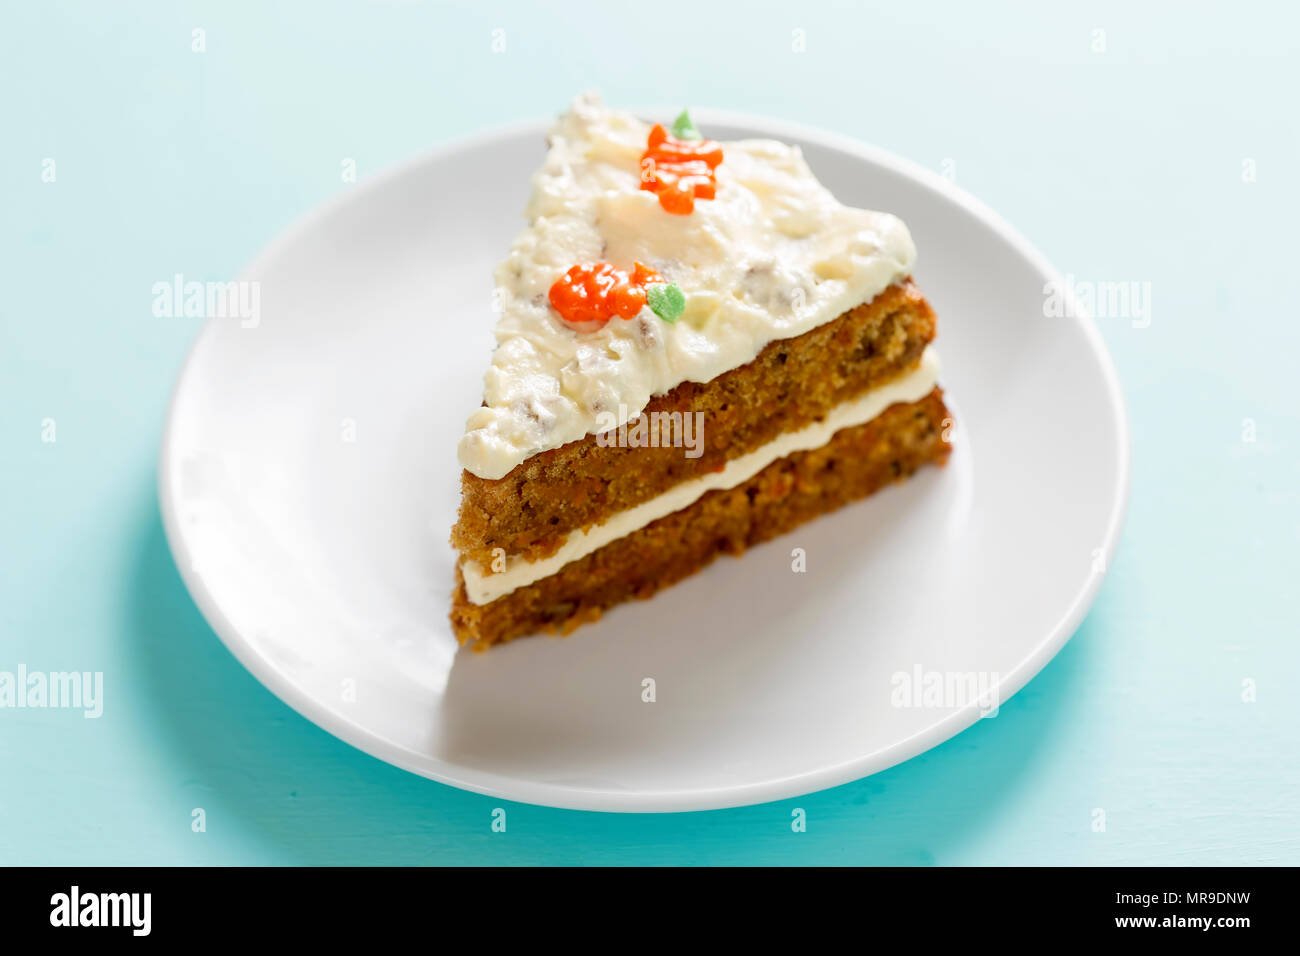 Slice of carrot cake with frosting and carrot decoration. - Stock Image